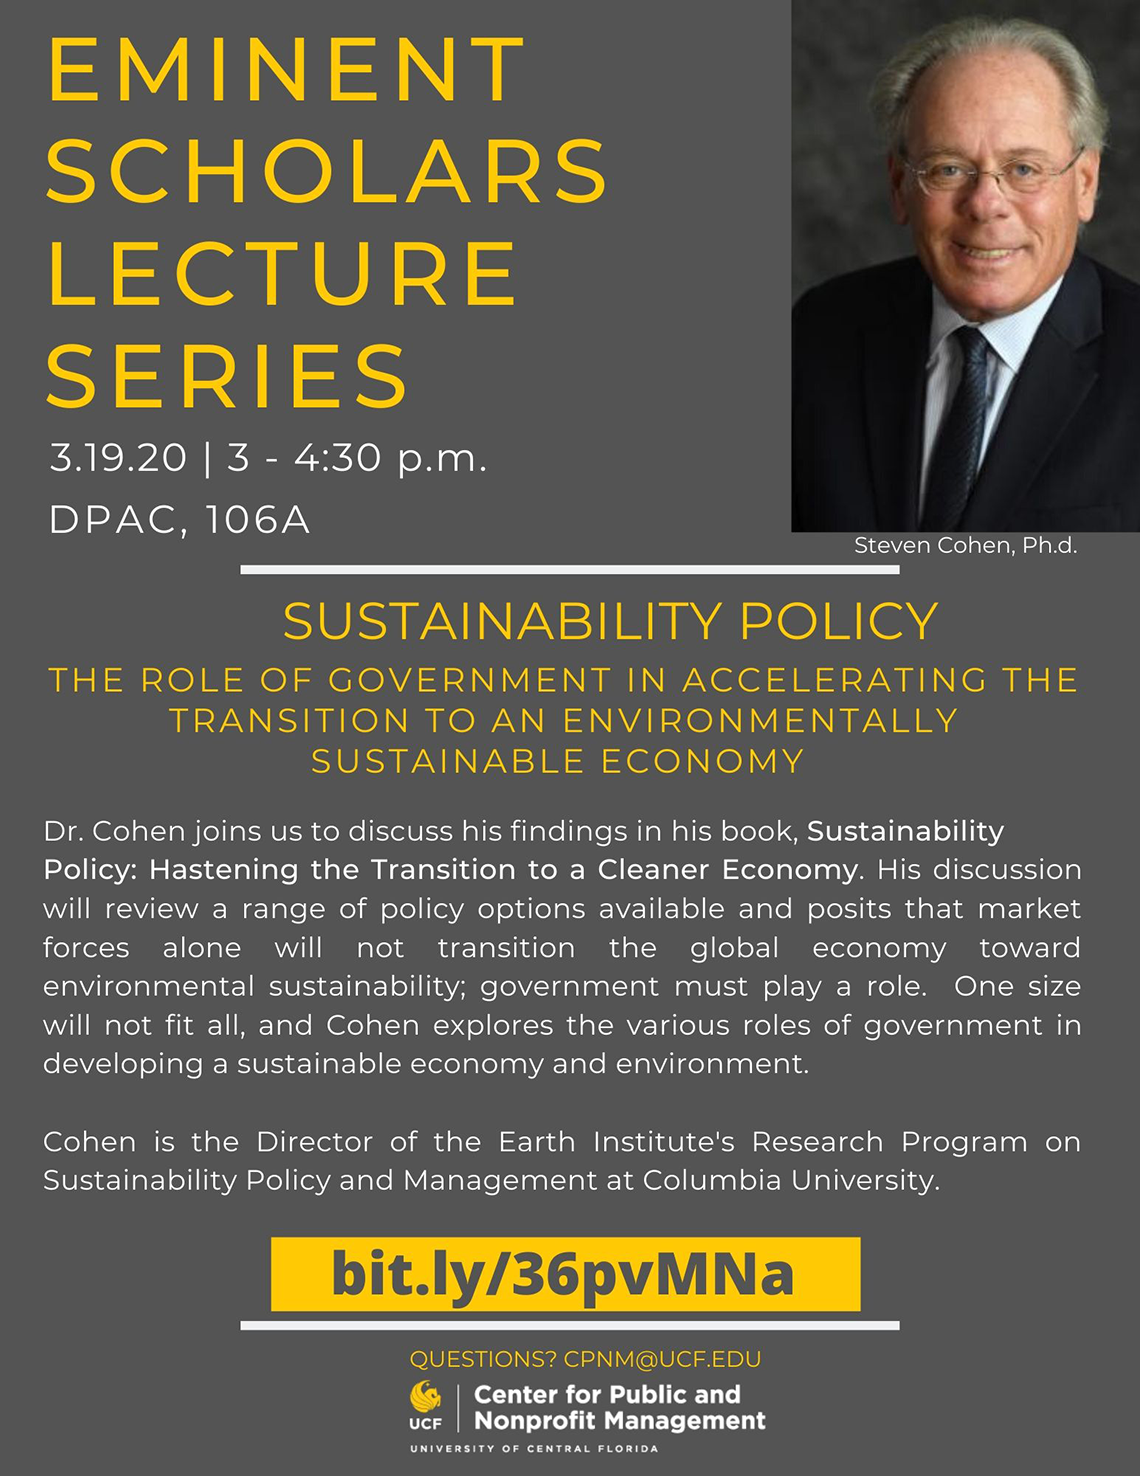 Stephen Cohen, Ph.D. | 03.19.20 | 3-4:40pm, DPAC, 106A